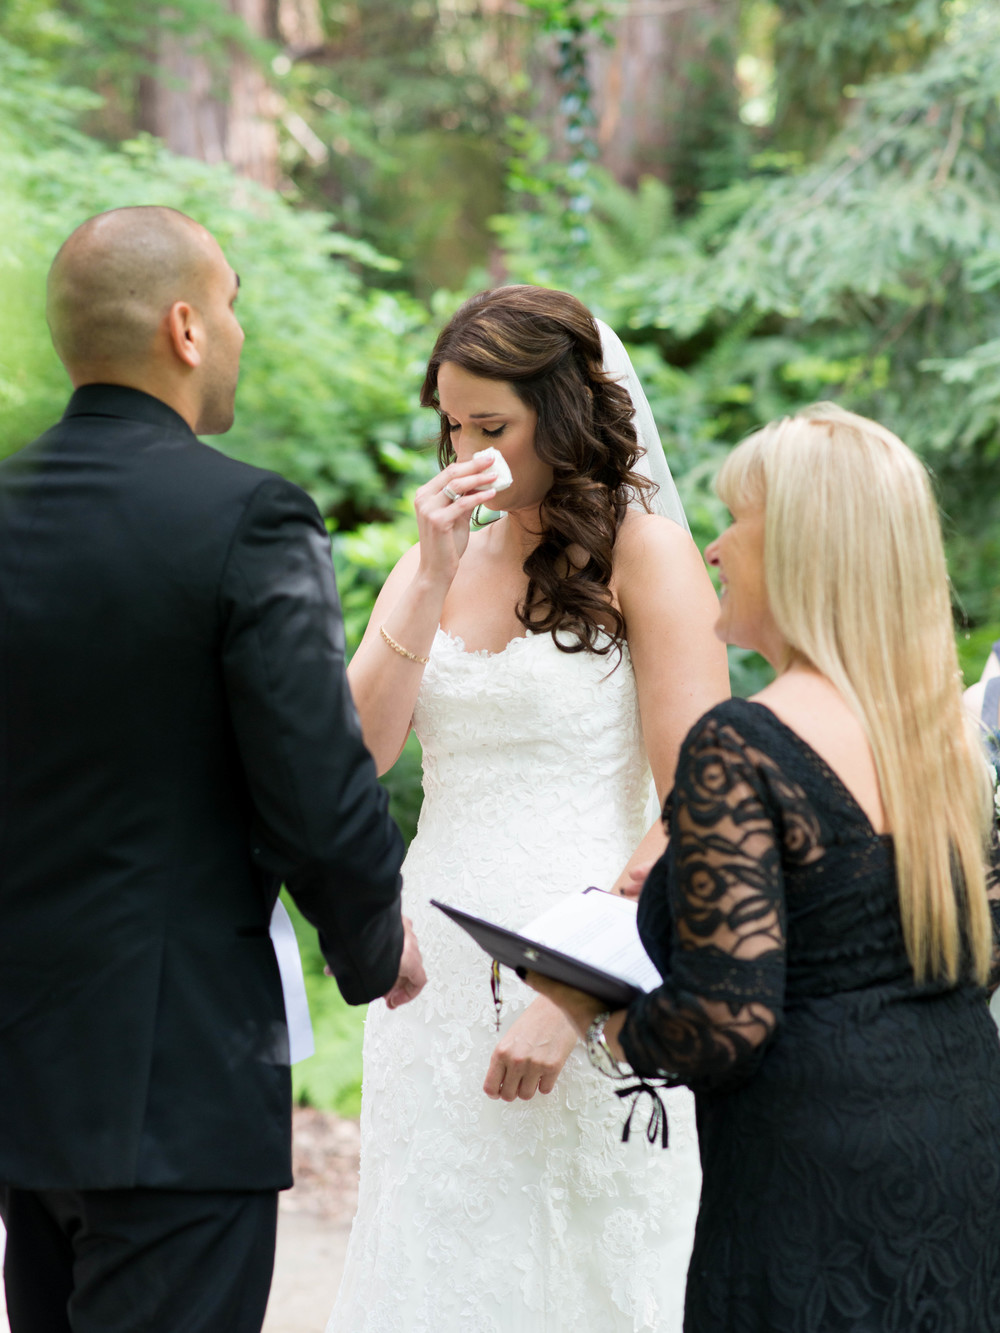 Meghan Mehan Photography - Alisa & Aaron_Nestldown Wedding - 319.jpg